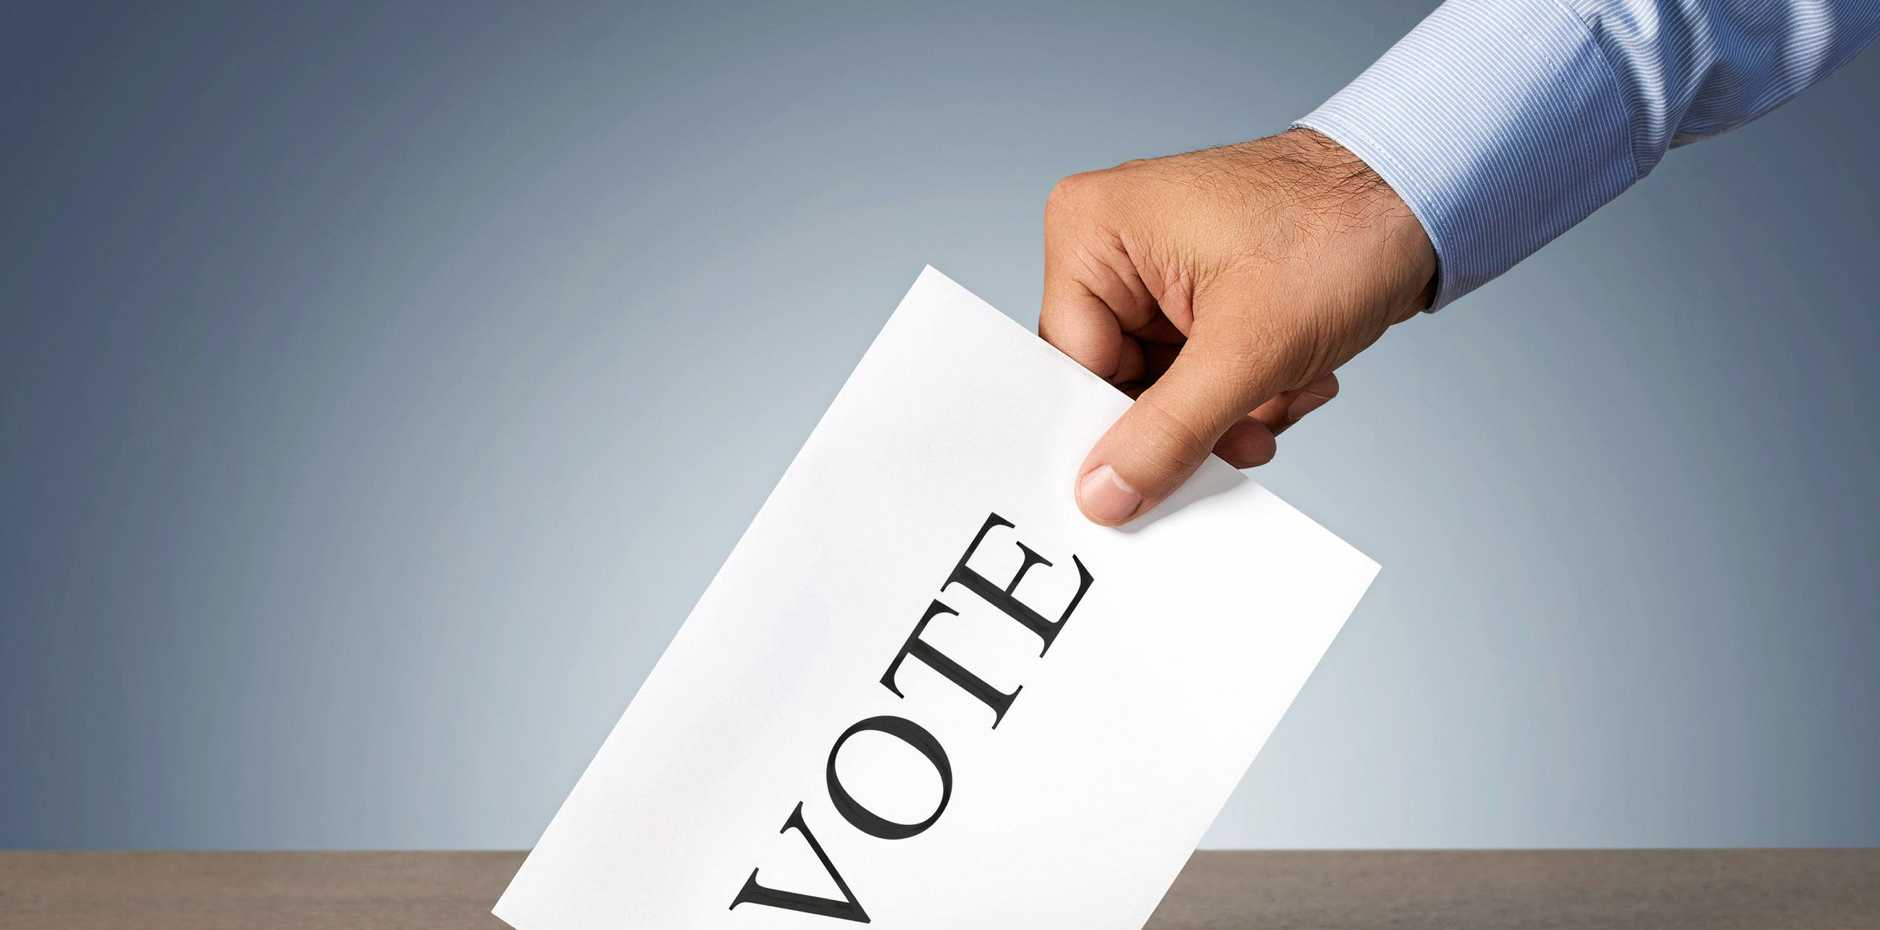 A letter writer says millions of Australians only truly express themselves within the confinement of the polling booth, where they don't have to justify their opinion or beliefs.